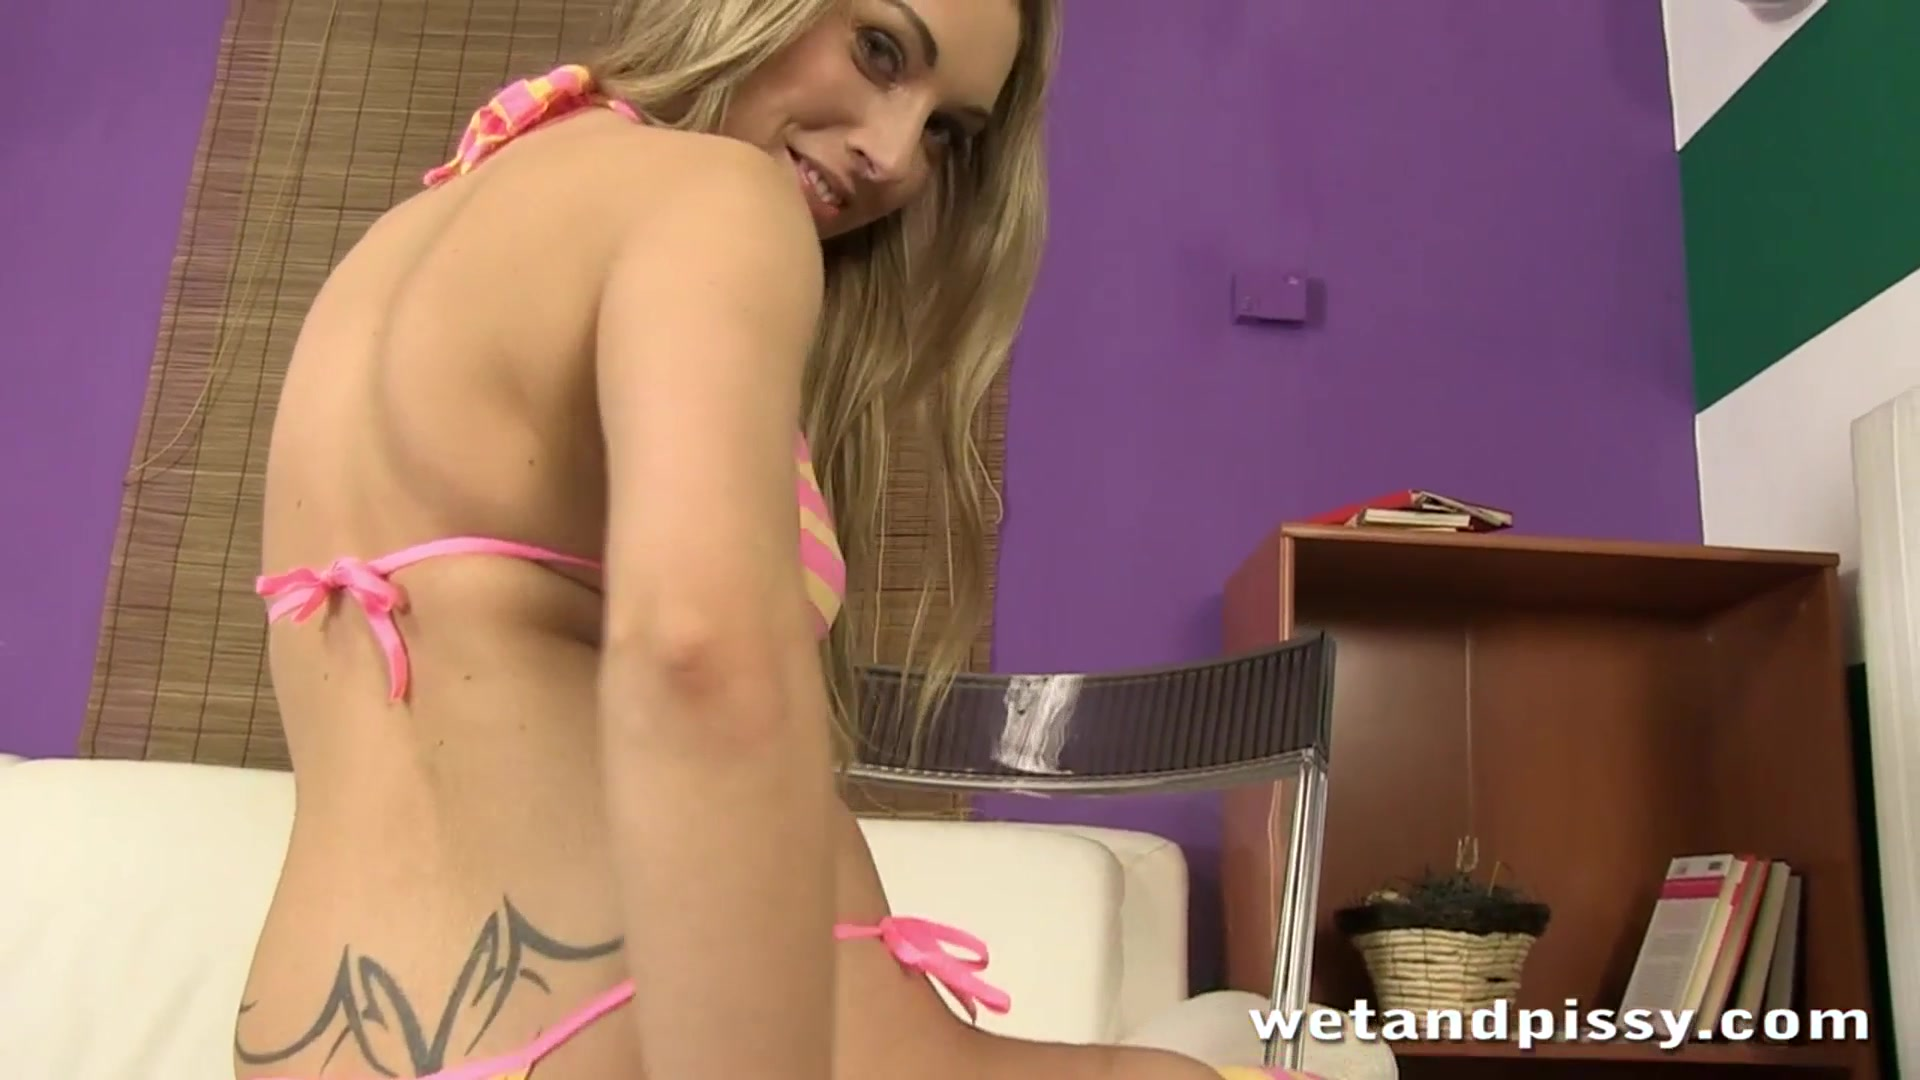 Blonde girl enjoys her first time ### on camera